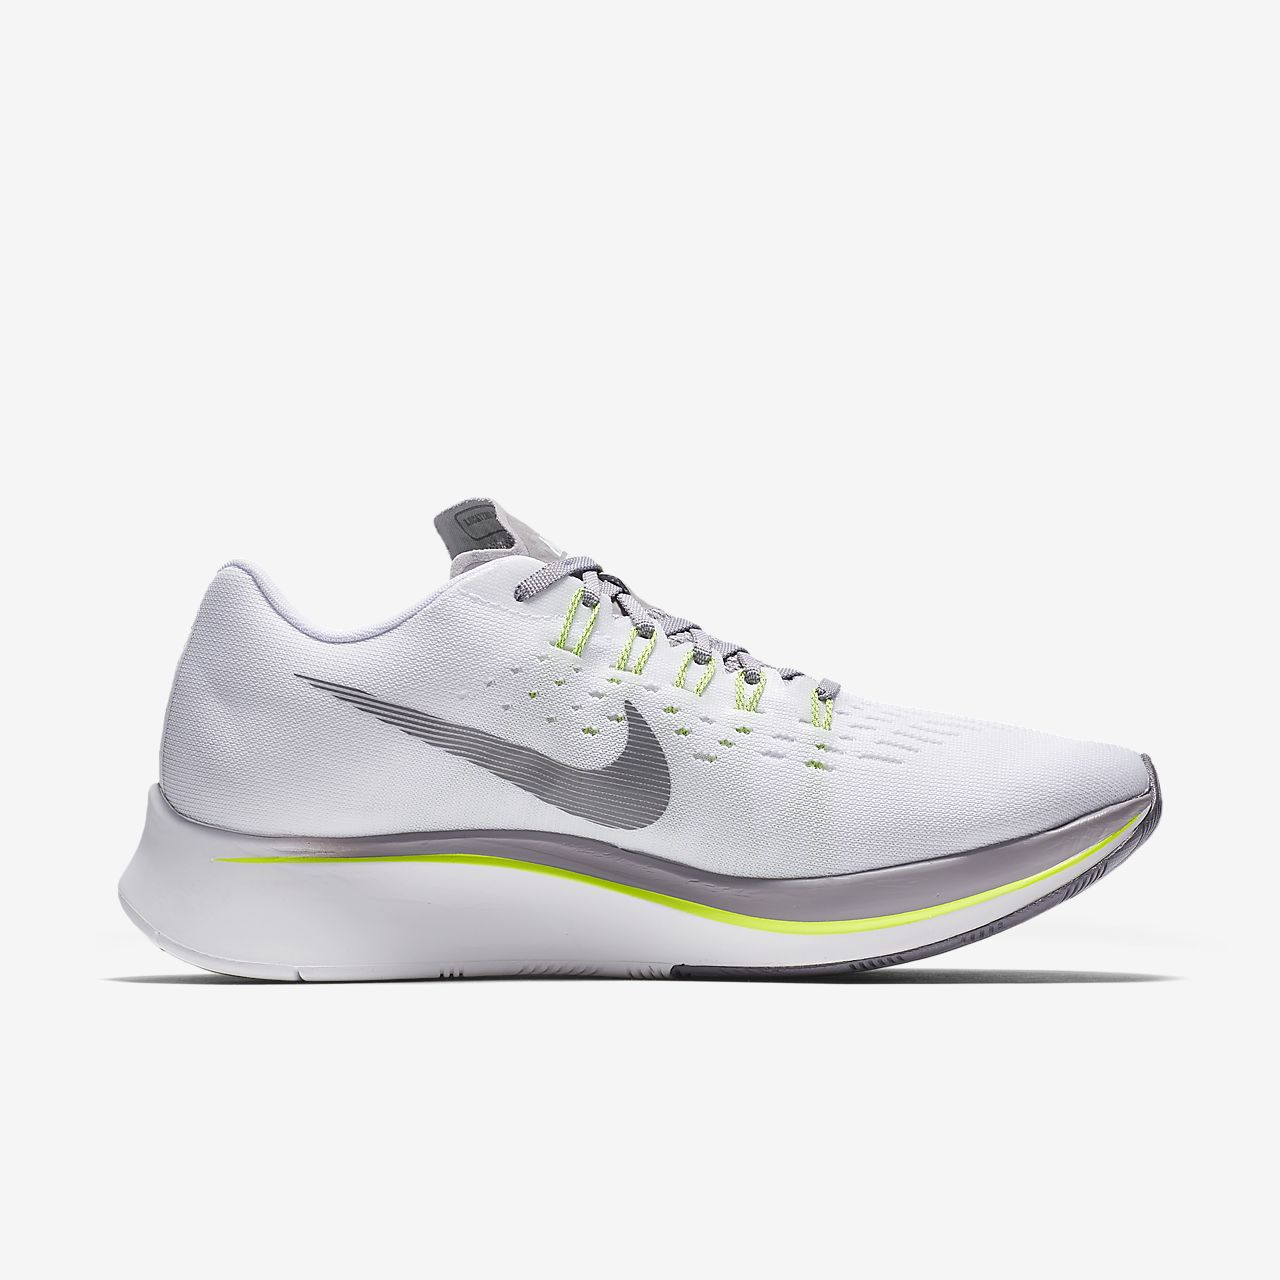 063d53edbfe Nike Zoom Fly Men s Running Shoe. Nike.com